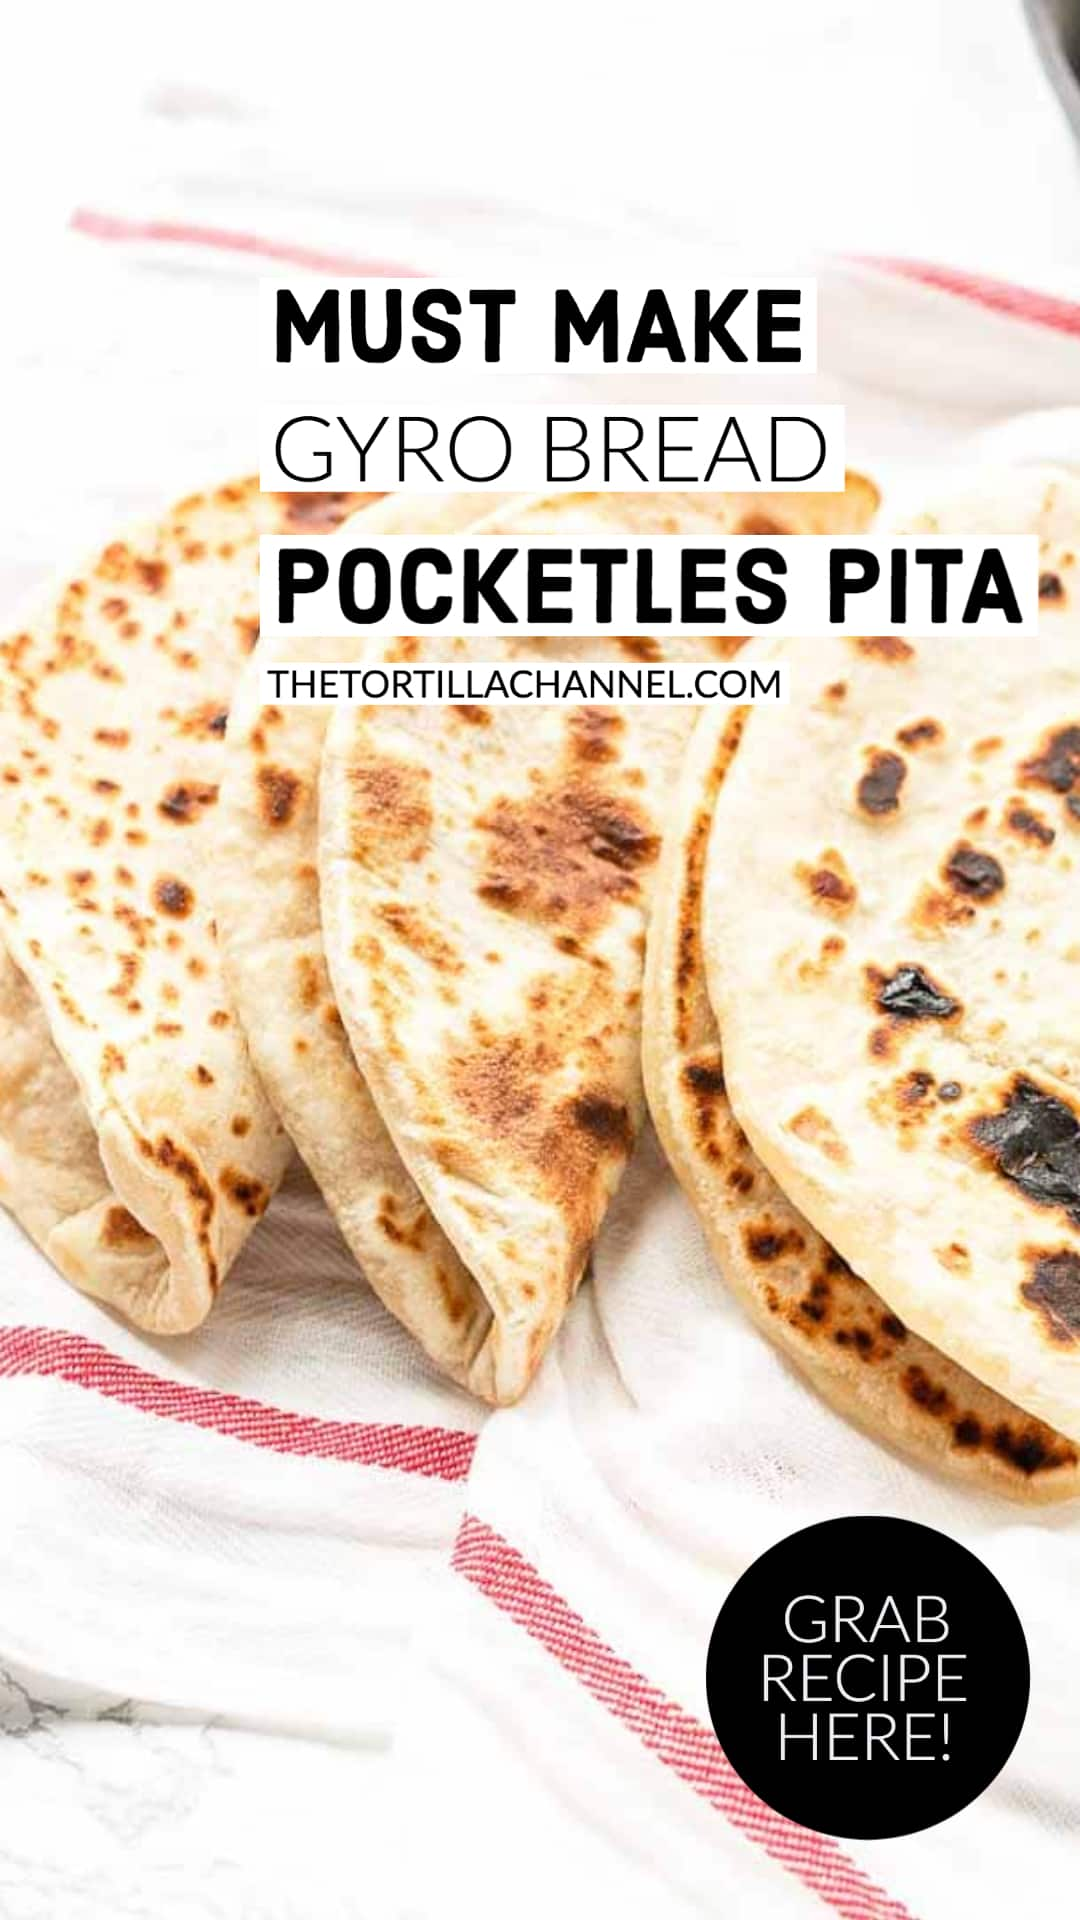 Make no yeast gyro bread a great pocketless Greek flatbread that you can eat with your favorite meats, fish or as bread. Easy to make and so tasty. Visit thetortillachannel.com for the full recipe #thetortillachannel #gyrobread #pitabread #pocketlesgreekflatbread